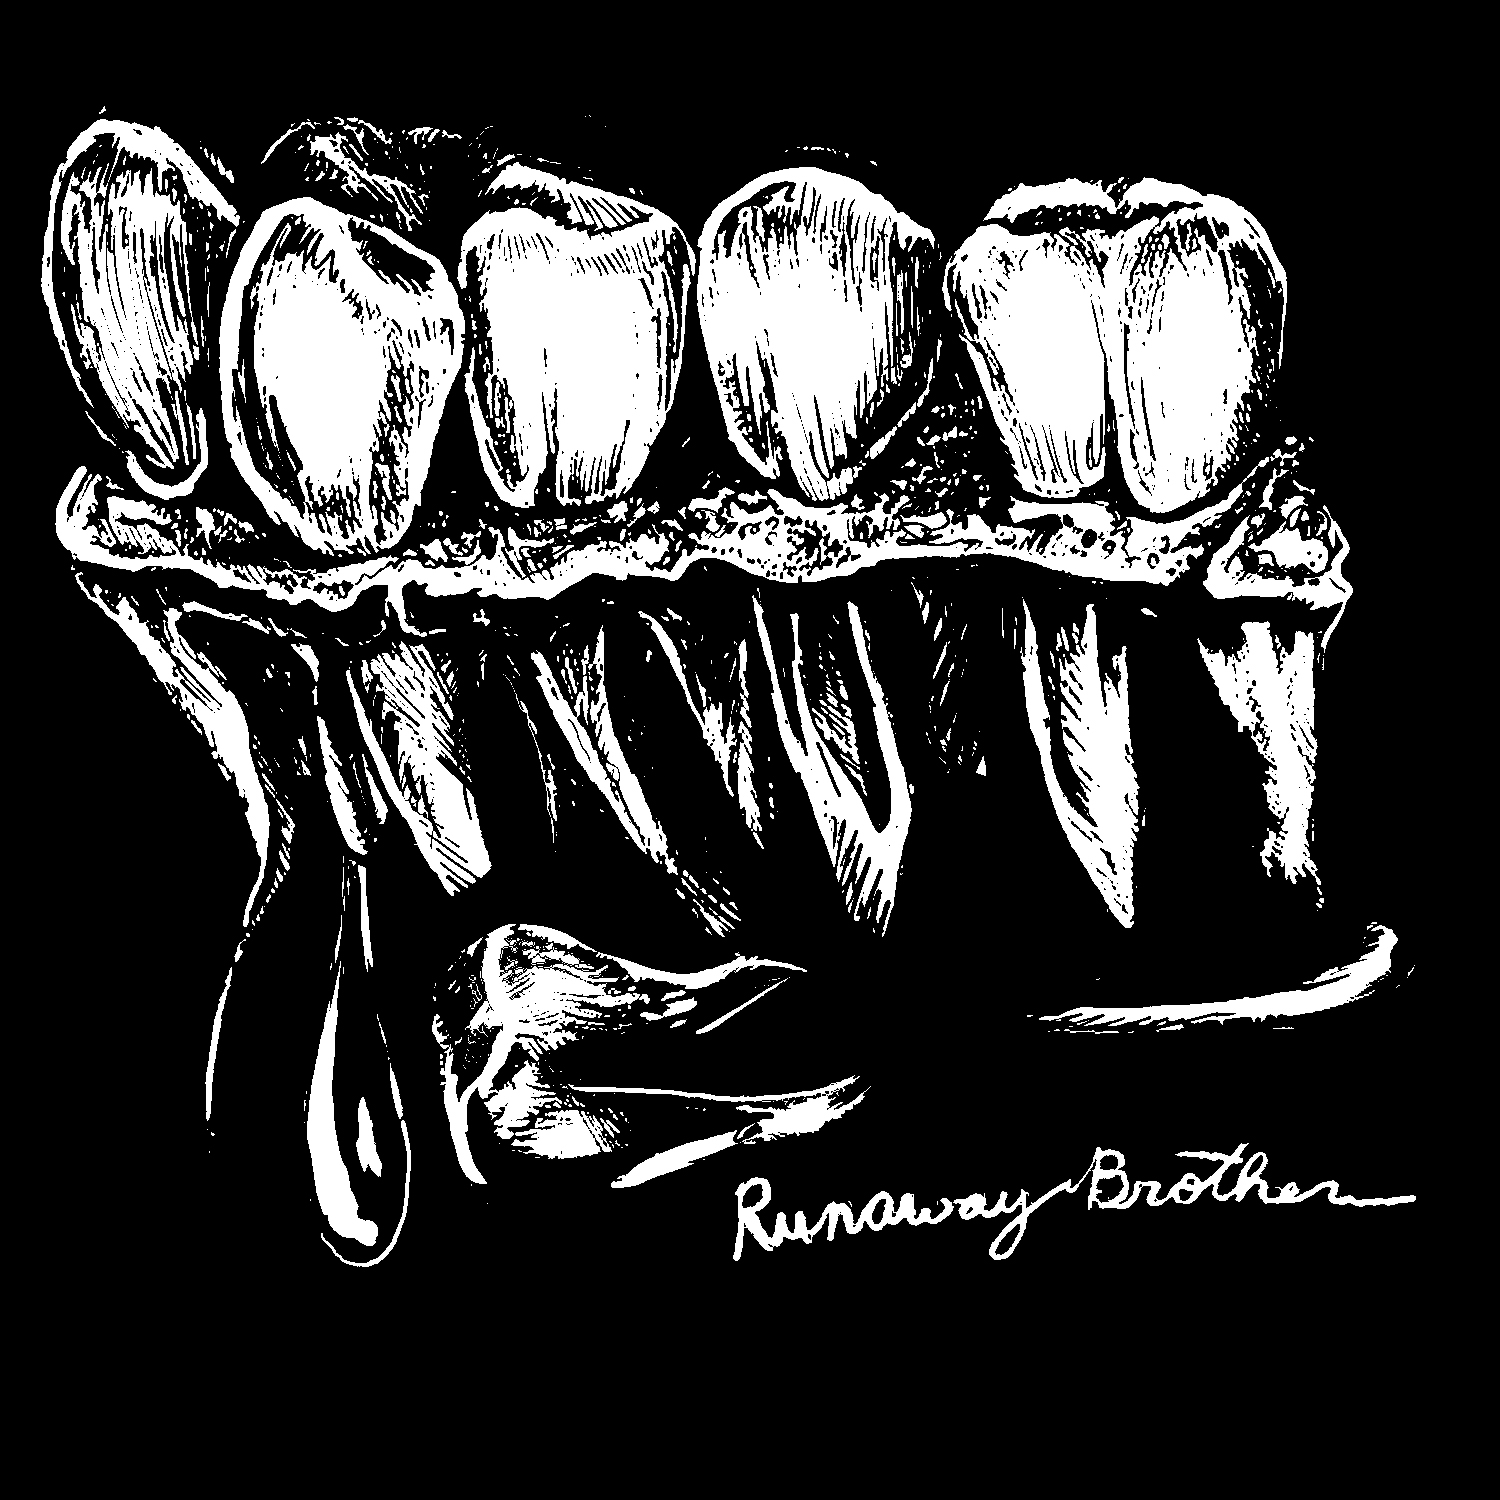 Runaway Brother Patch (2016)   https://runawaybrother.bandcamp.com/